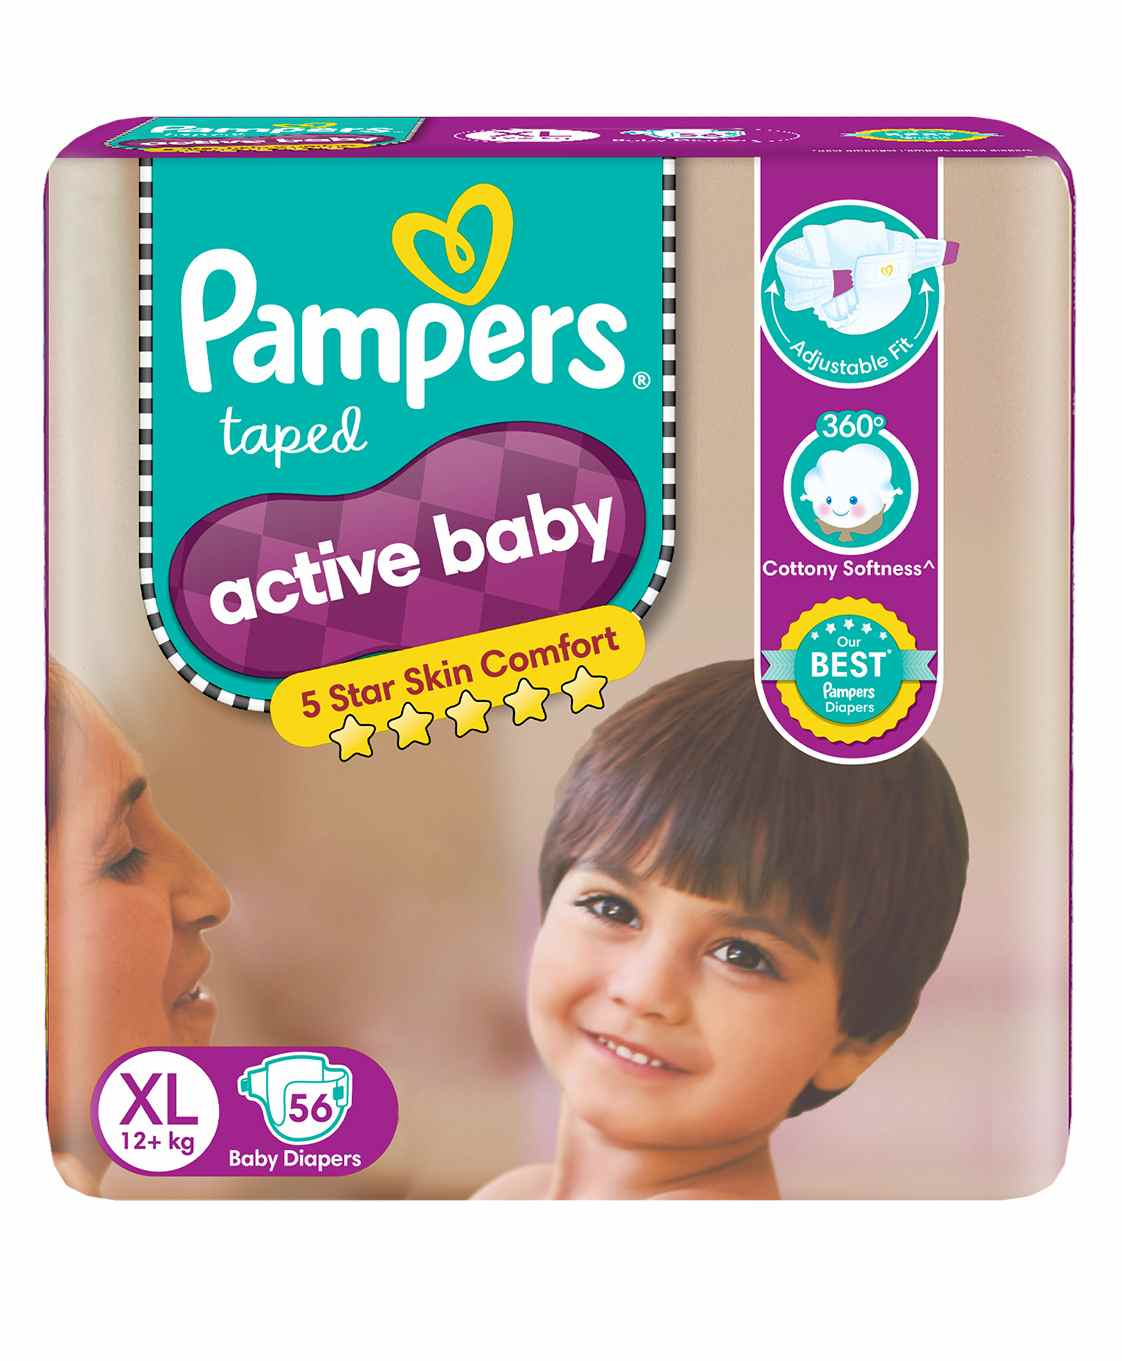 Cheap Baby Clothes Australia Buy Pampers Online Australia Writing And Editing